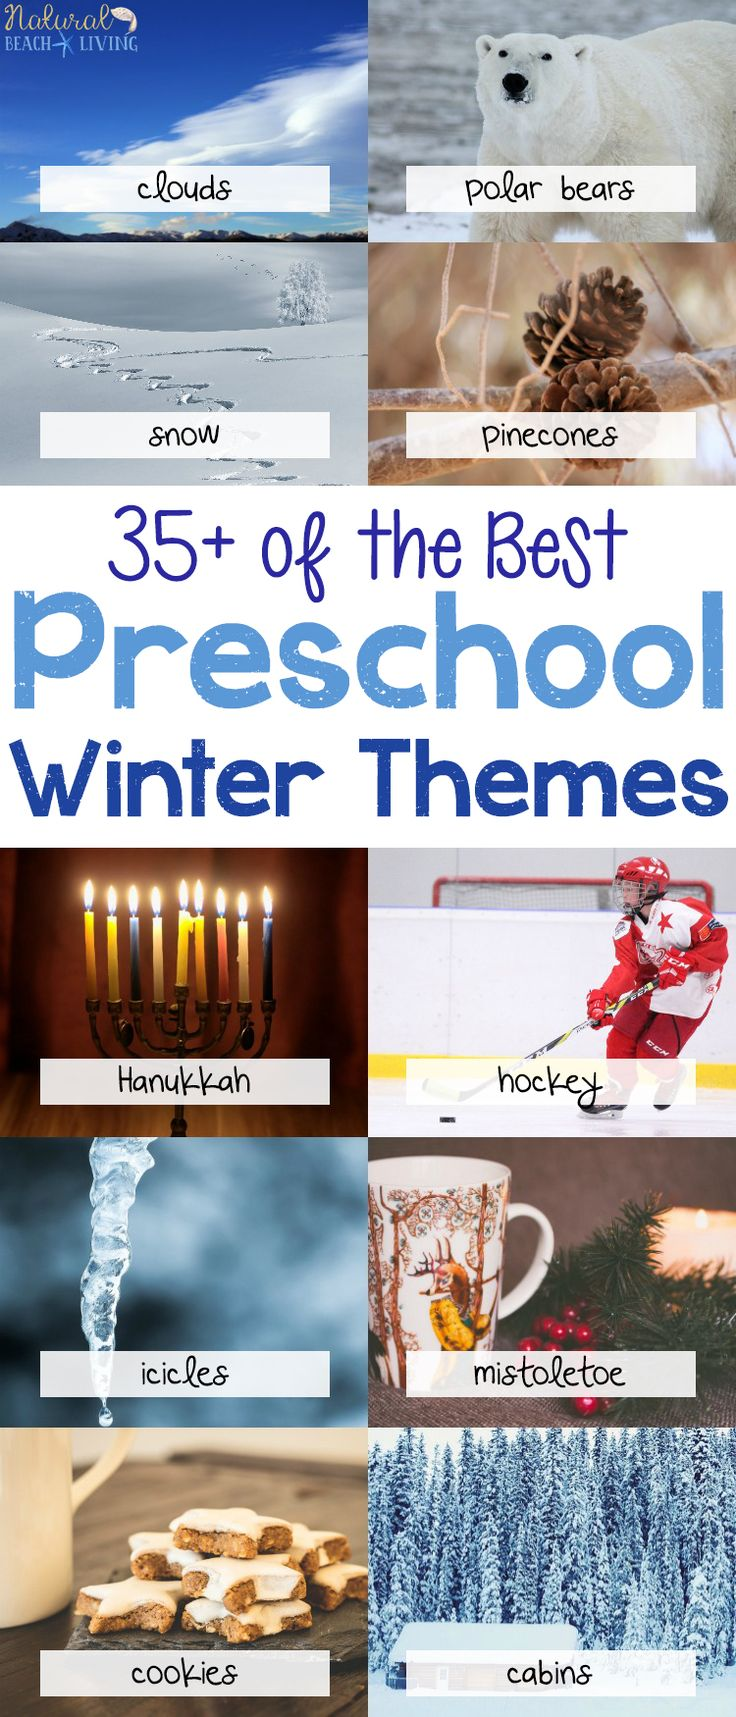 35+ Best Winter Preschool Themes, lesson plans, activities, and printables. Perfect for weekly or monthly themed learning or unit studies. Preschool book lists, preschool activities, art, and crafts. Winter preschool themes include literacy, math, STEM ideas and more. #preschool